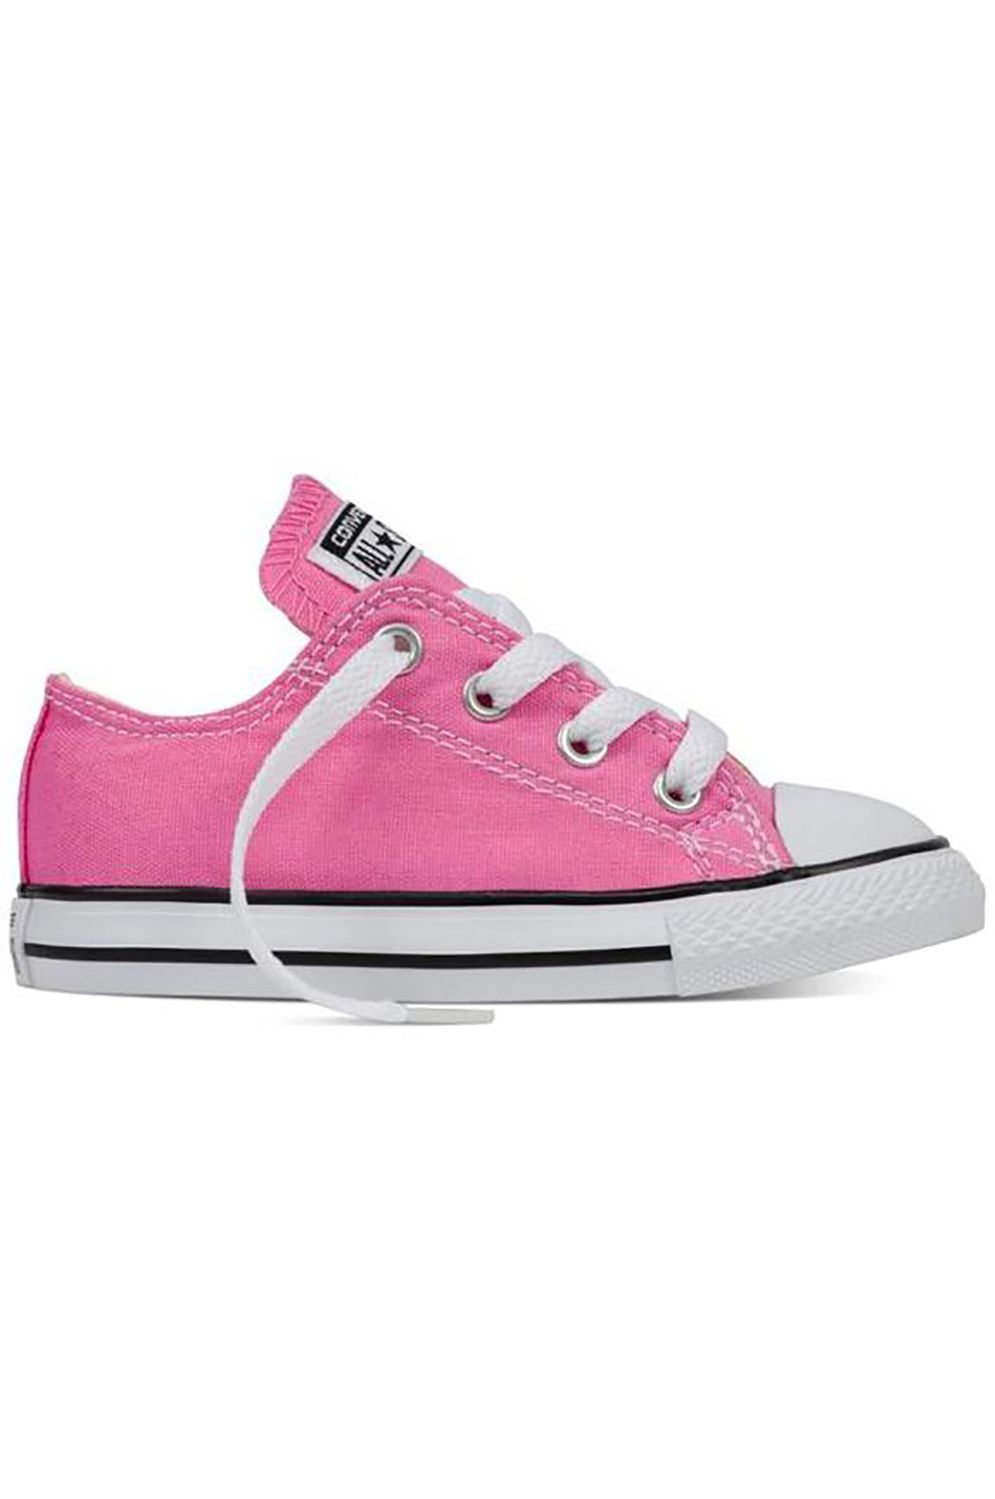 Tenis Converse CHUCK TAYLOR ALL STAR OX Pink Champagne